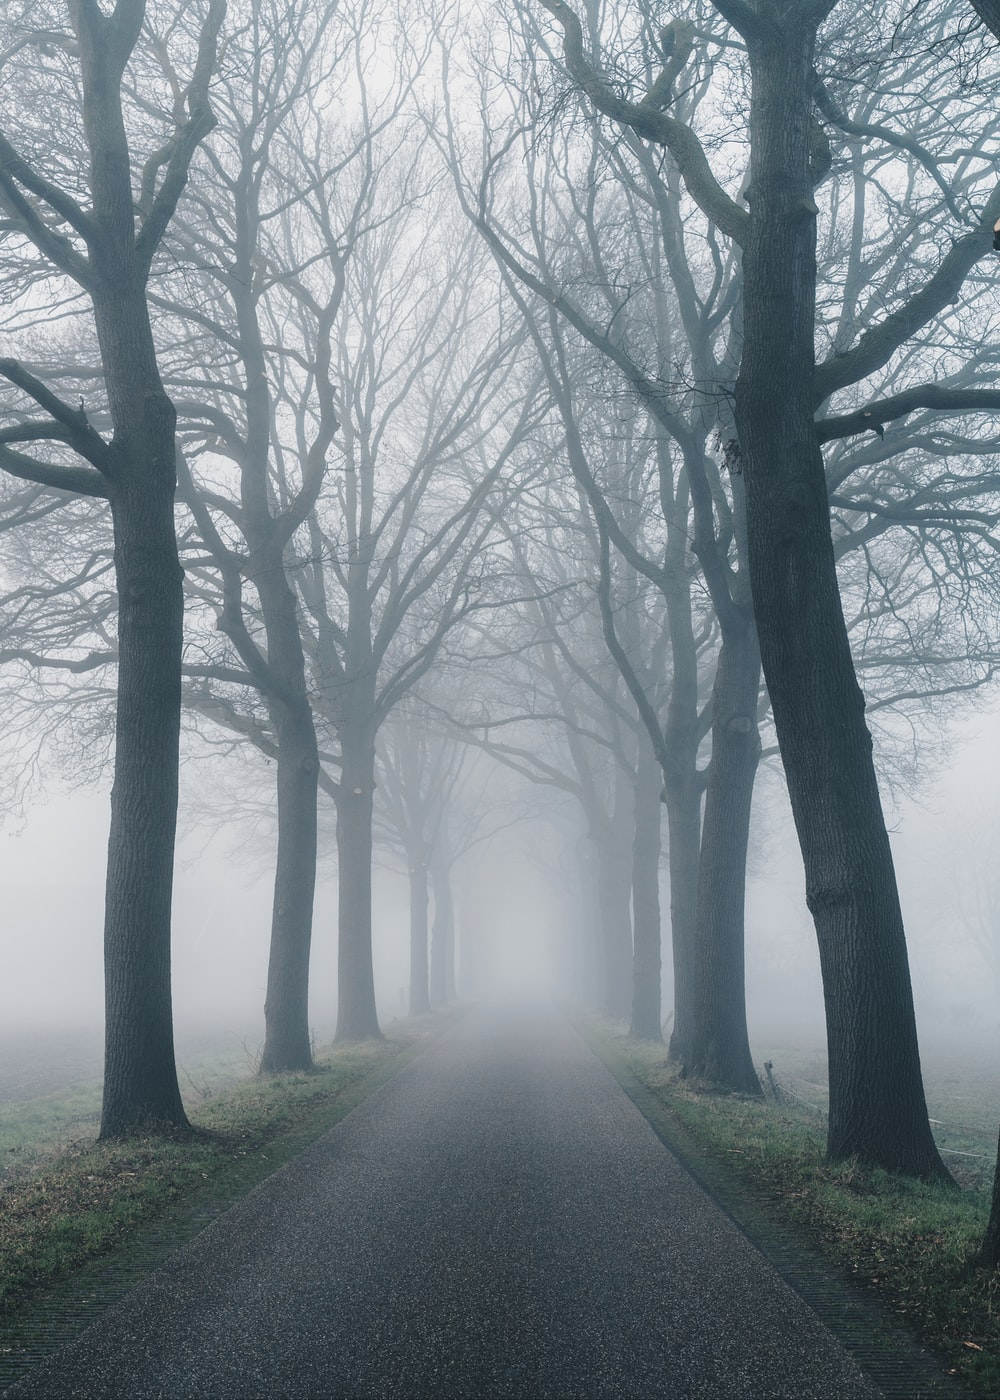 road surrounded with bare trees in foggy day